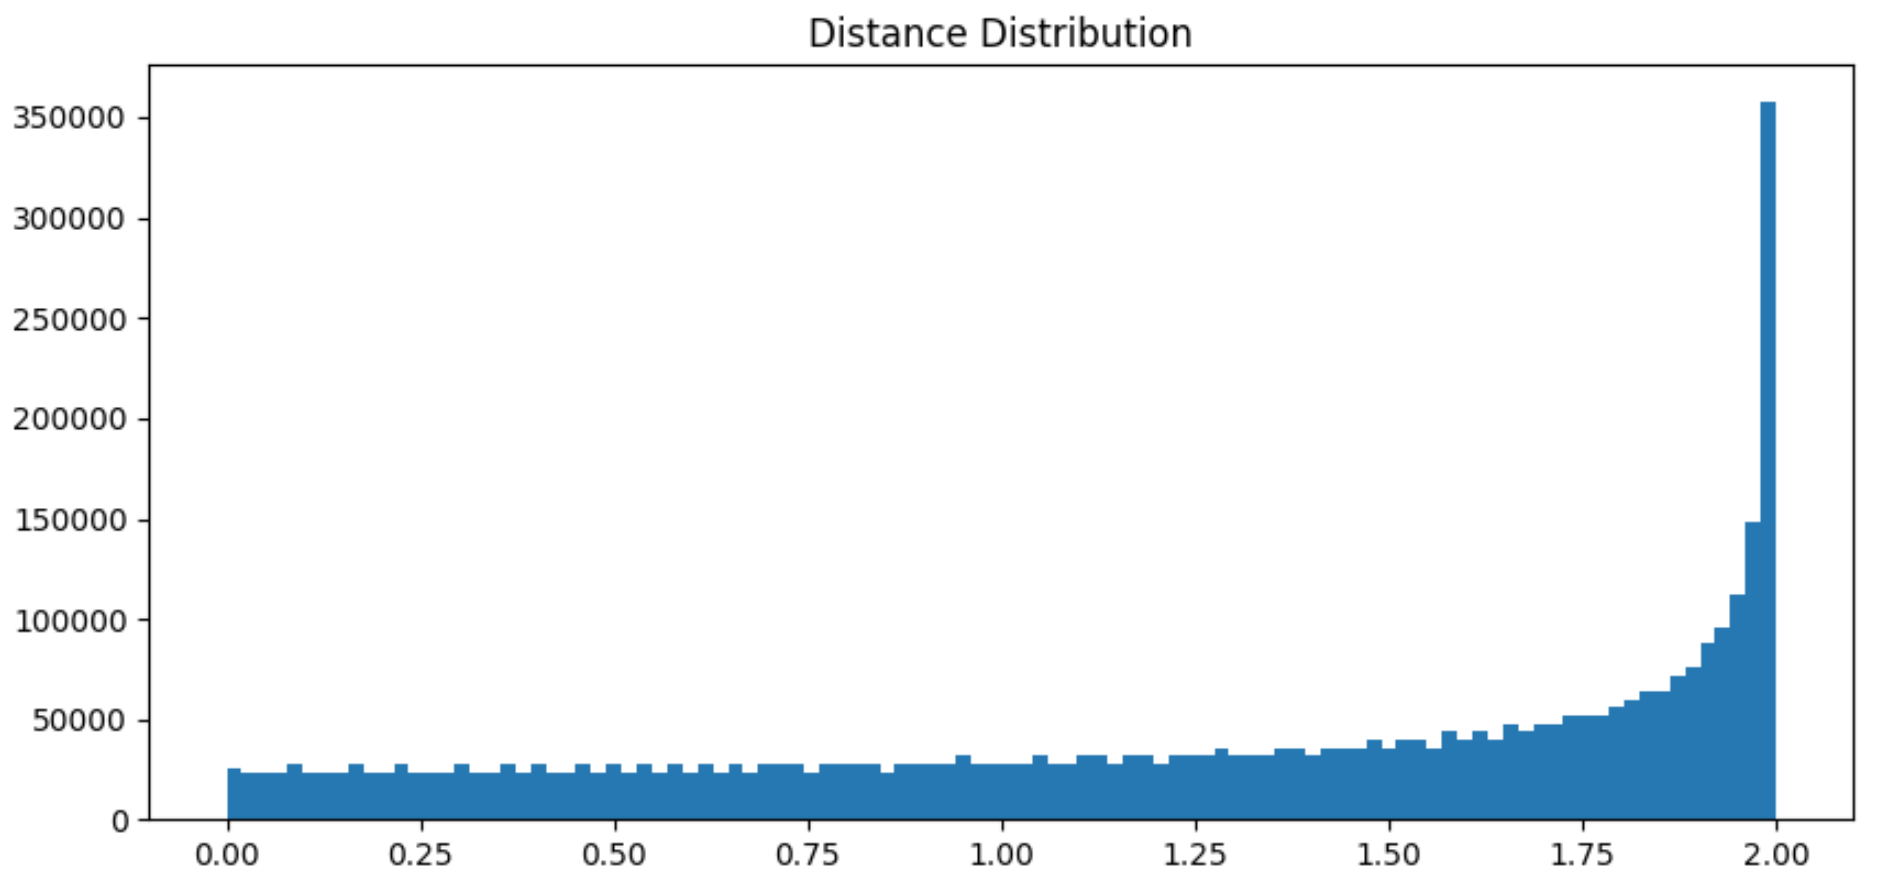 Histogram between 0 and 2 on the horizontal axis. The vertical axis shows bins of 4 million simulations. The histogram is flat, gradually increasing, and then spiking up near 2.